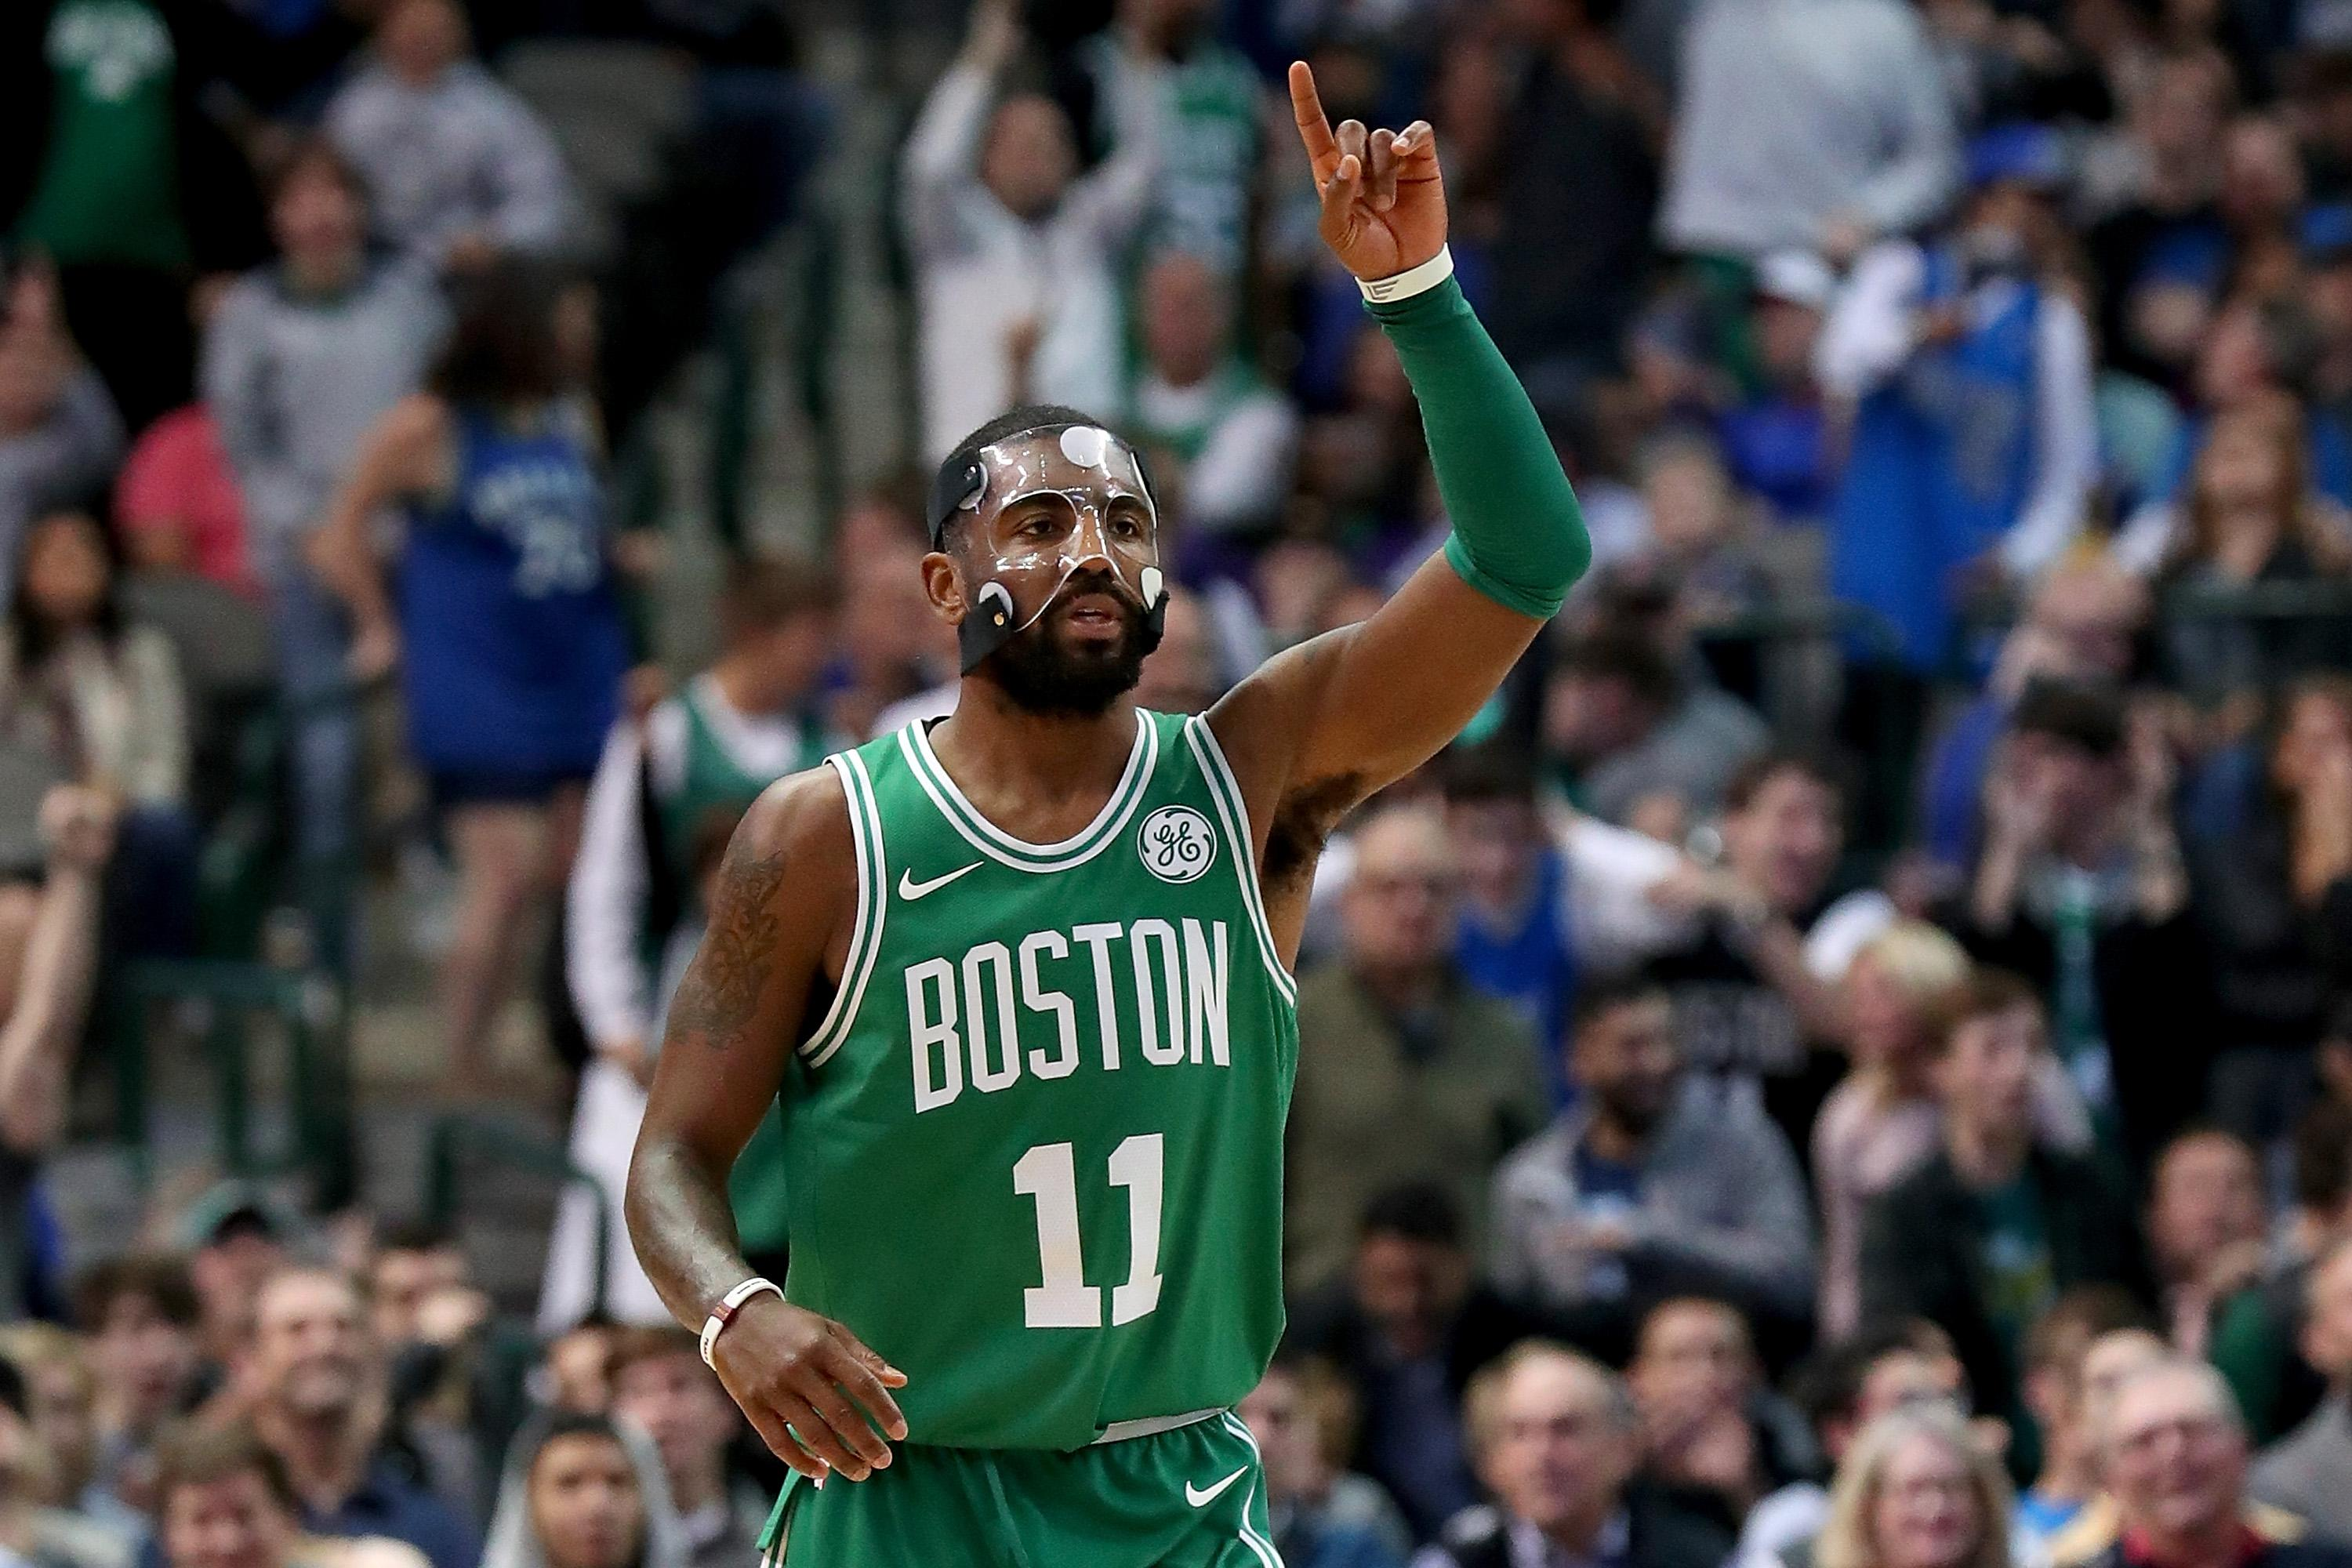 Celtics: Kyrie Irving Talking About Staying In Boston ...Kyrie Irving